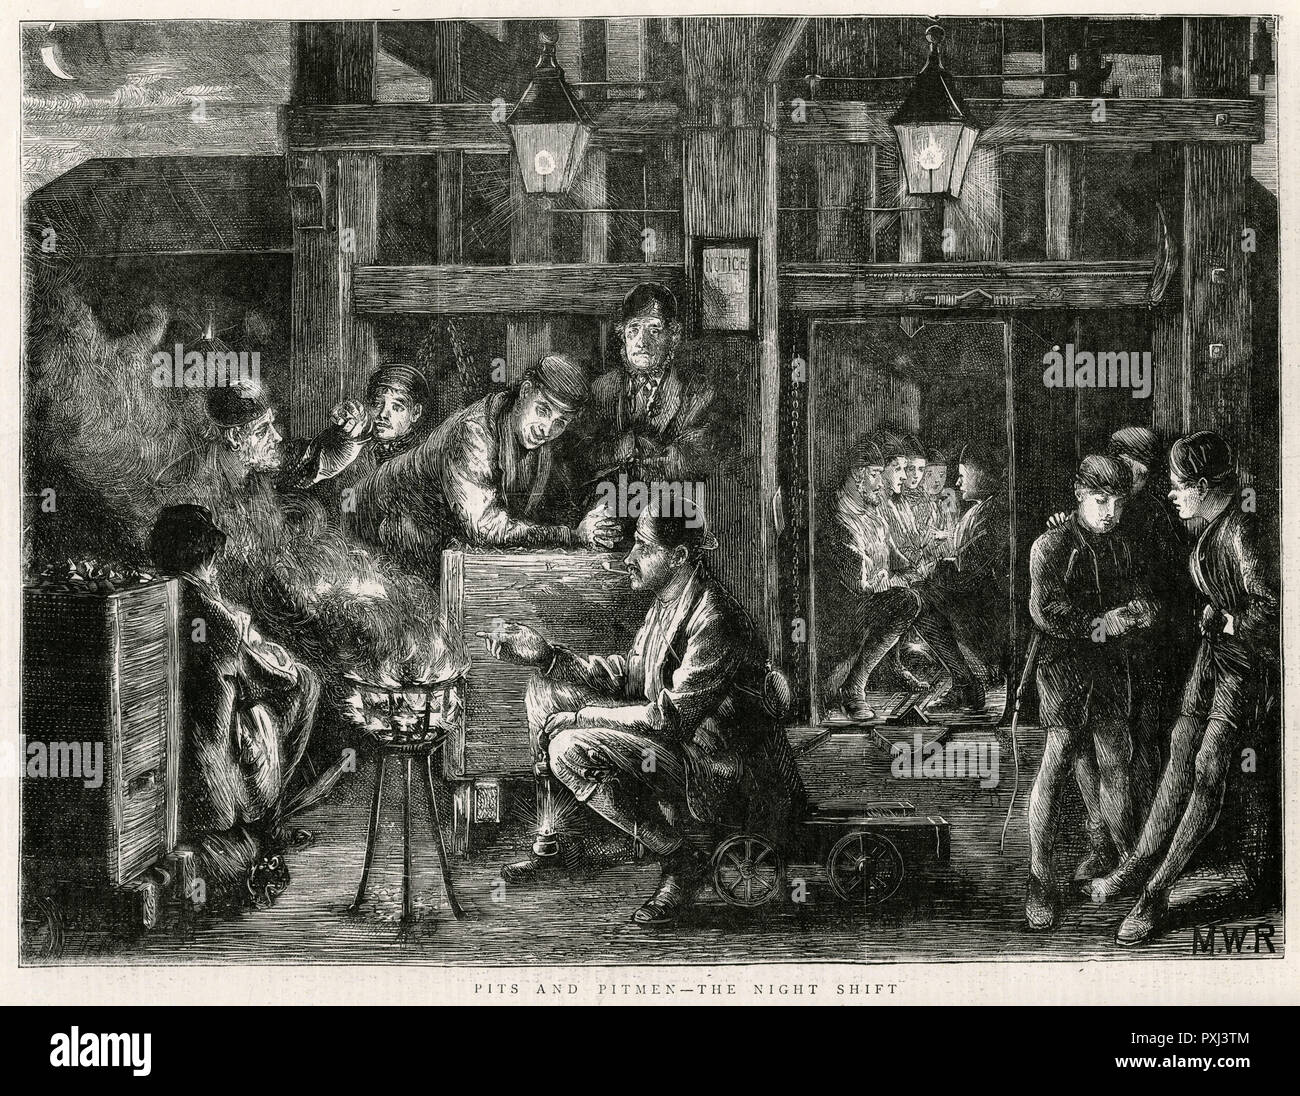 Night-shift down the pits, half an hour before the shift starts at five-thirty in the evening, the miners meet on the pit-heap for a chat by a fire, this engraving was took from Seaham, pitmen sent half their llife down the mines and could tell you many thrilling stories.     Date: 1871 - Stock Image